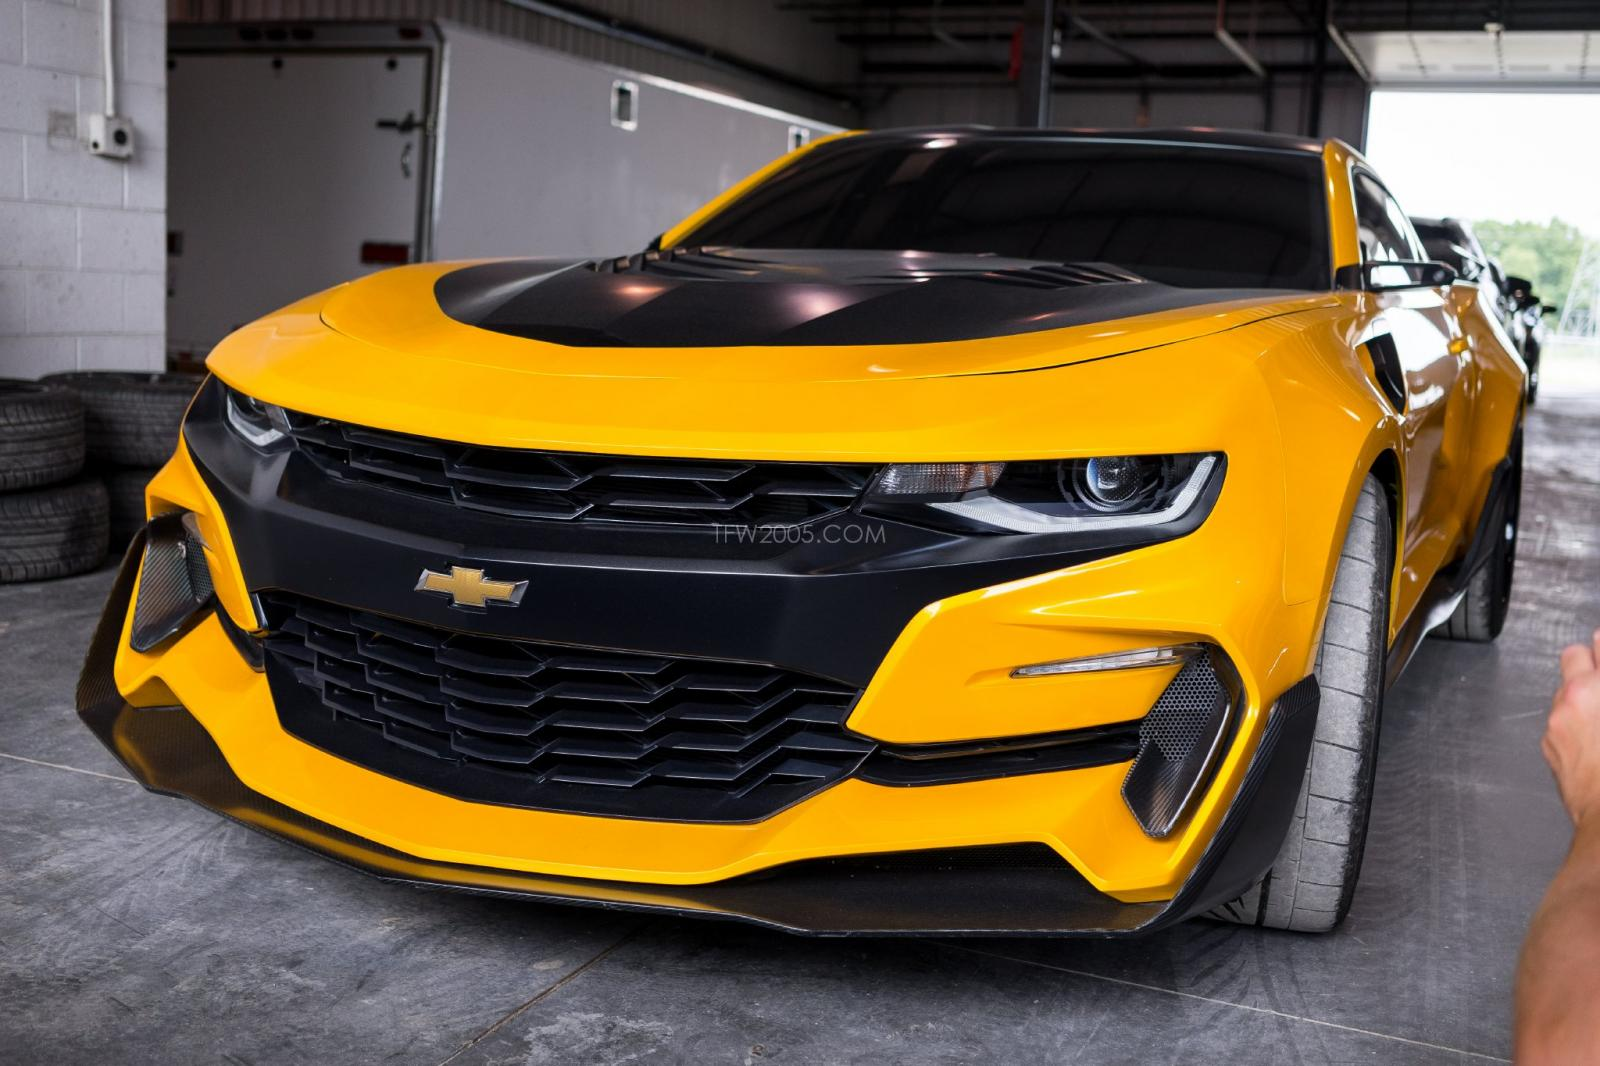 transformers 5 set visit pics bumblebee camaro camaro6. Black Bedroom Furniture Sets. Home Design Ideas